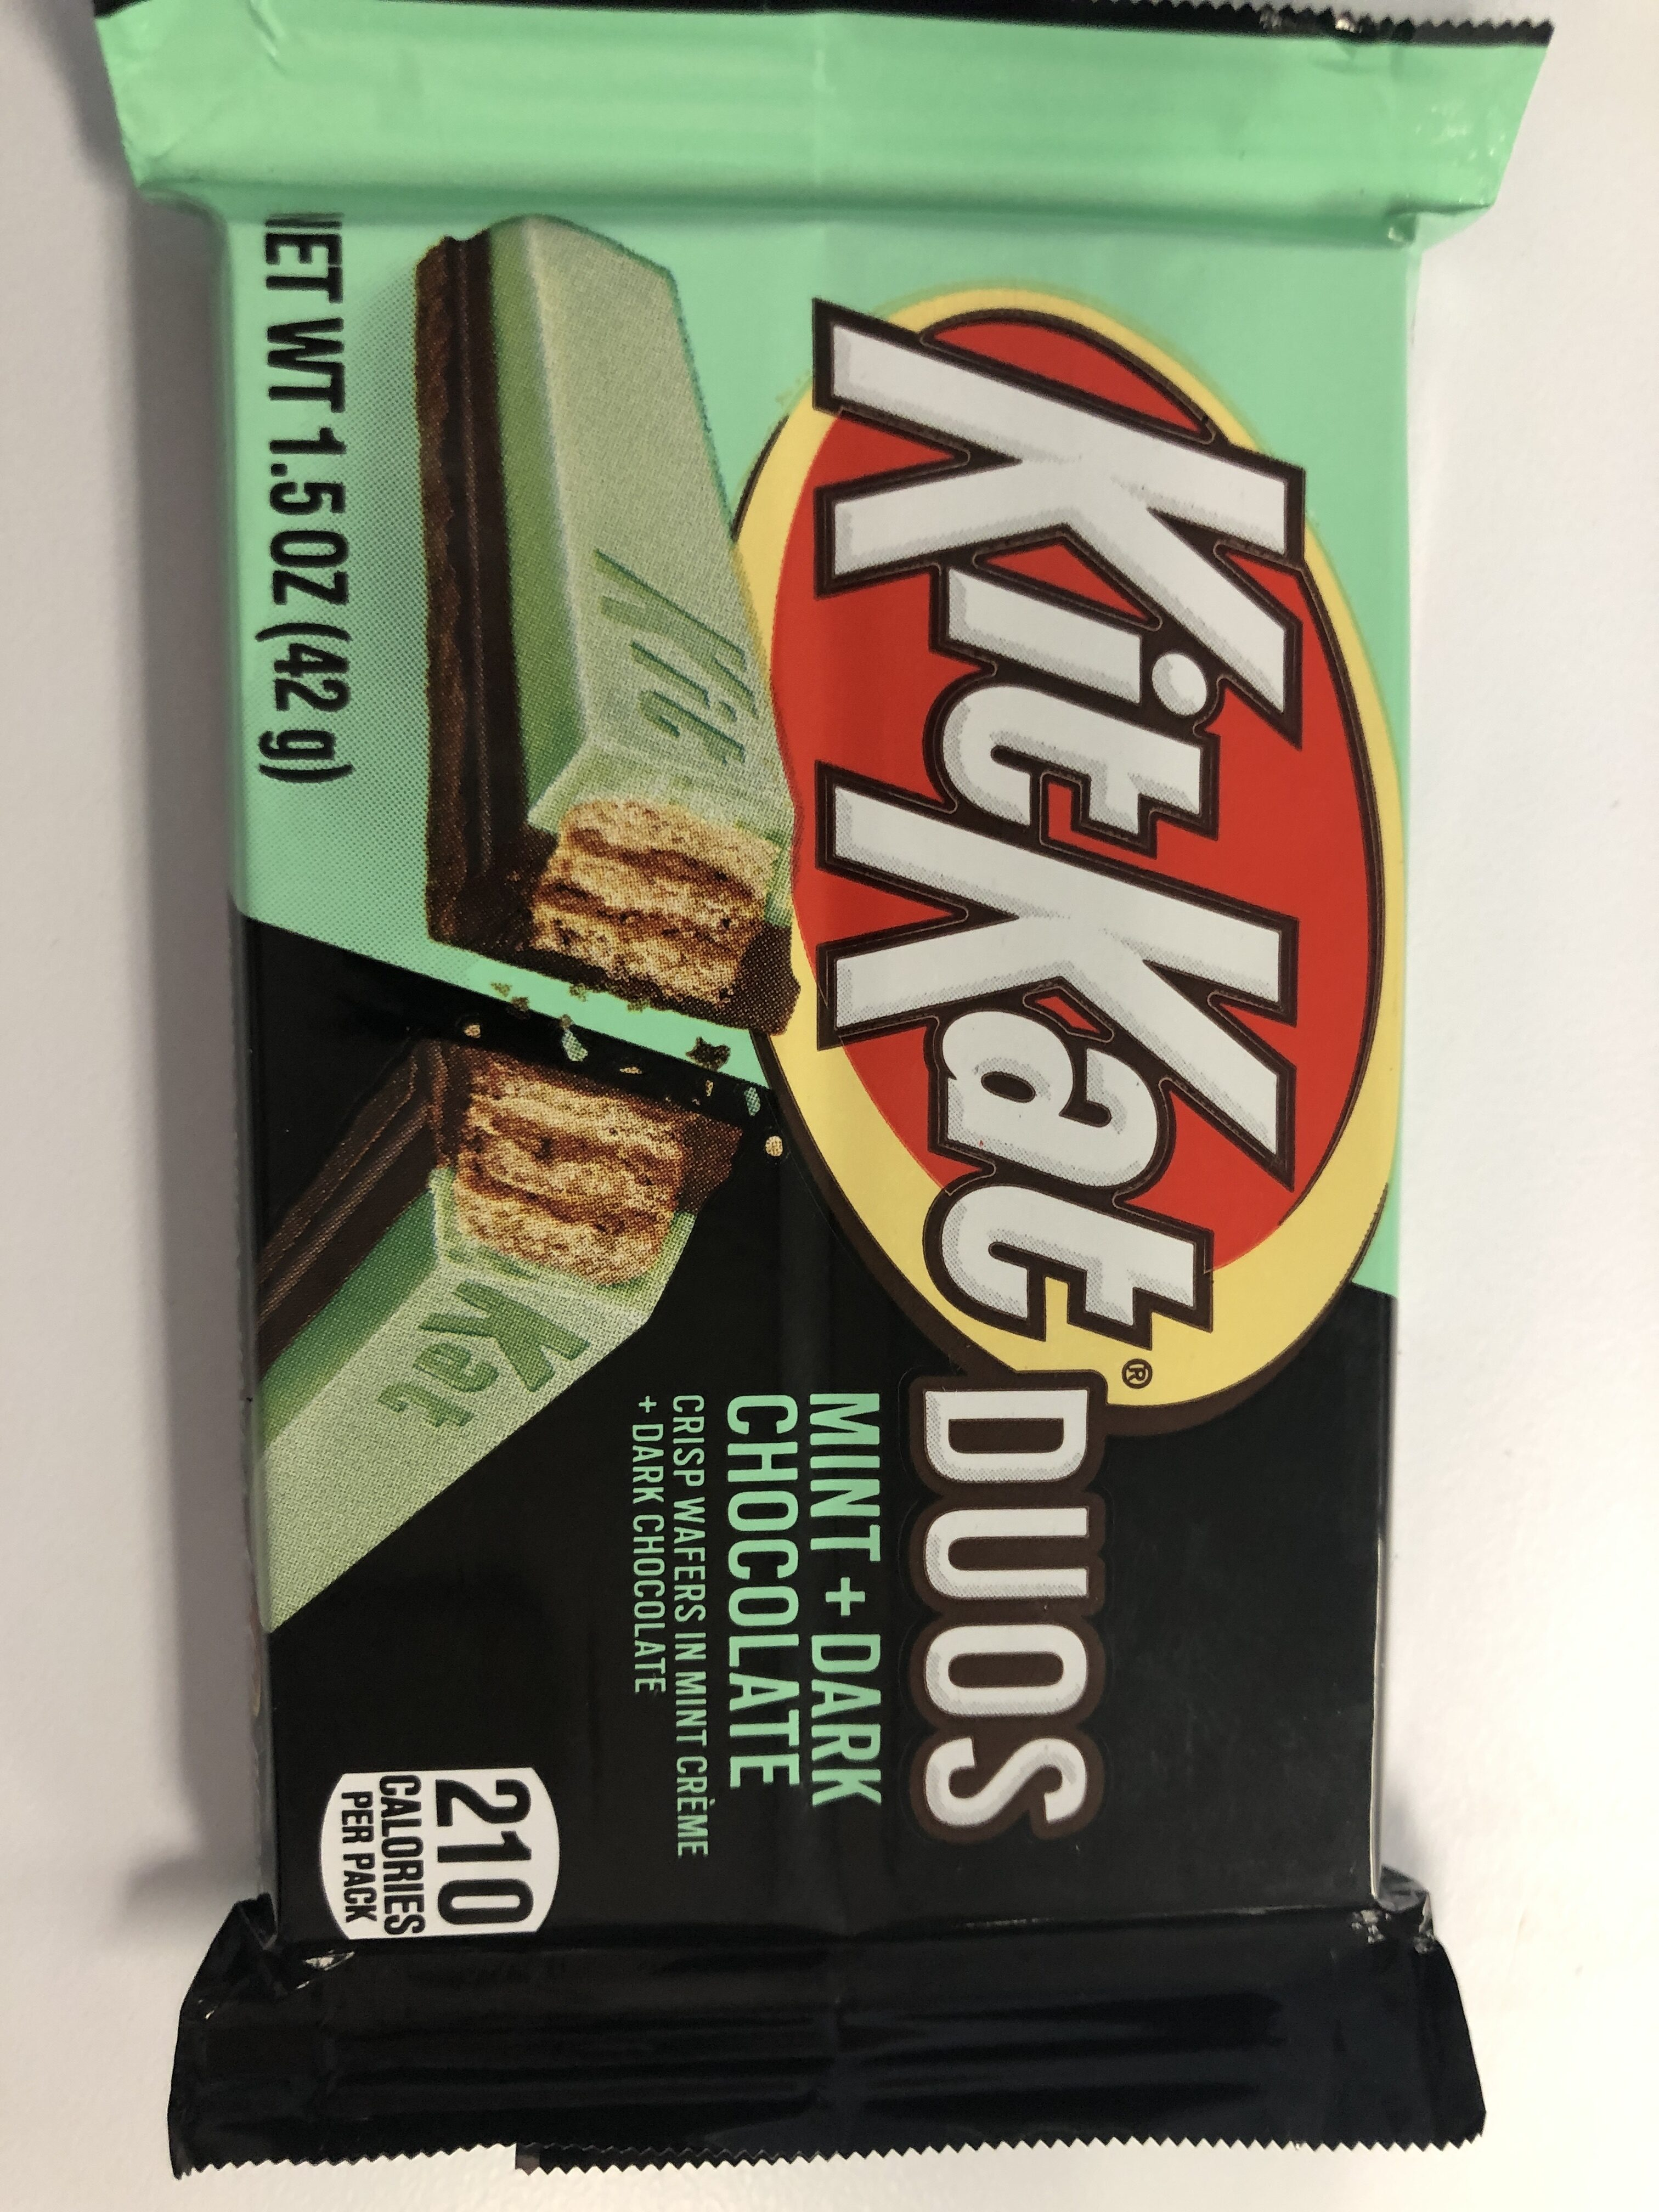 Kit kat duo dark chocolate mint chocolate bar - Product - en